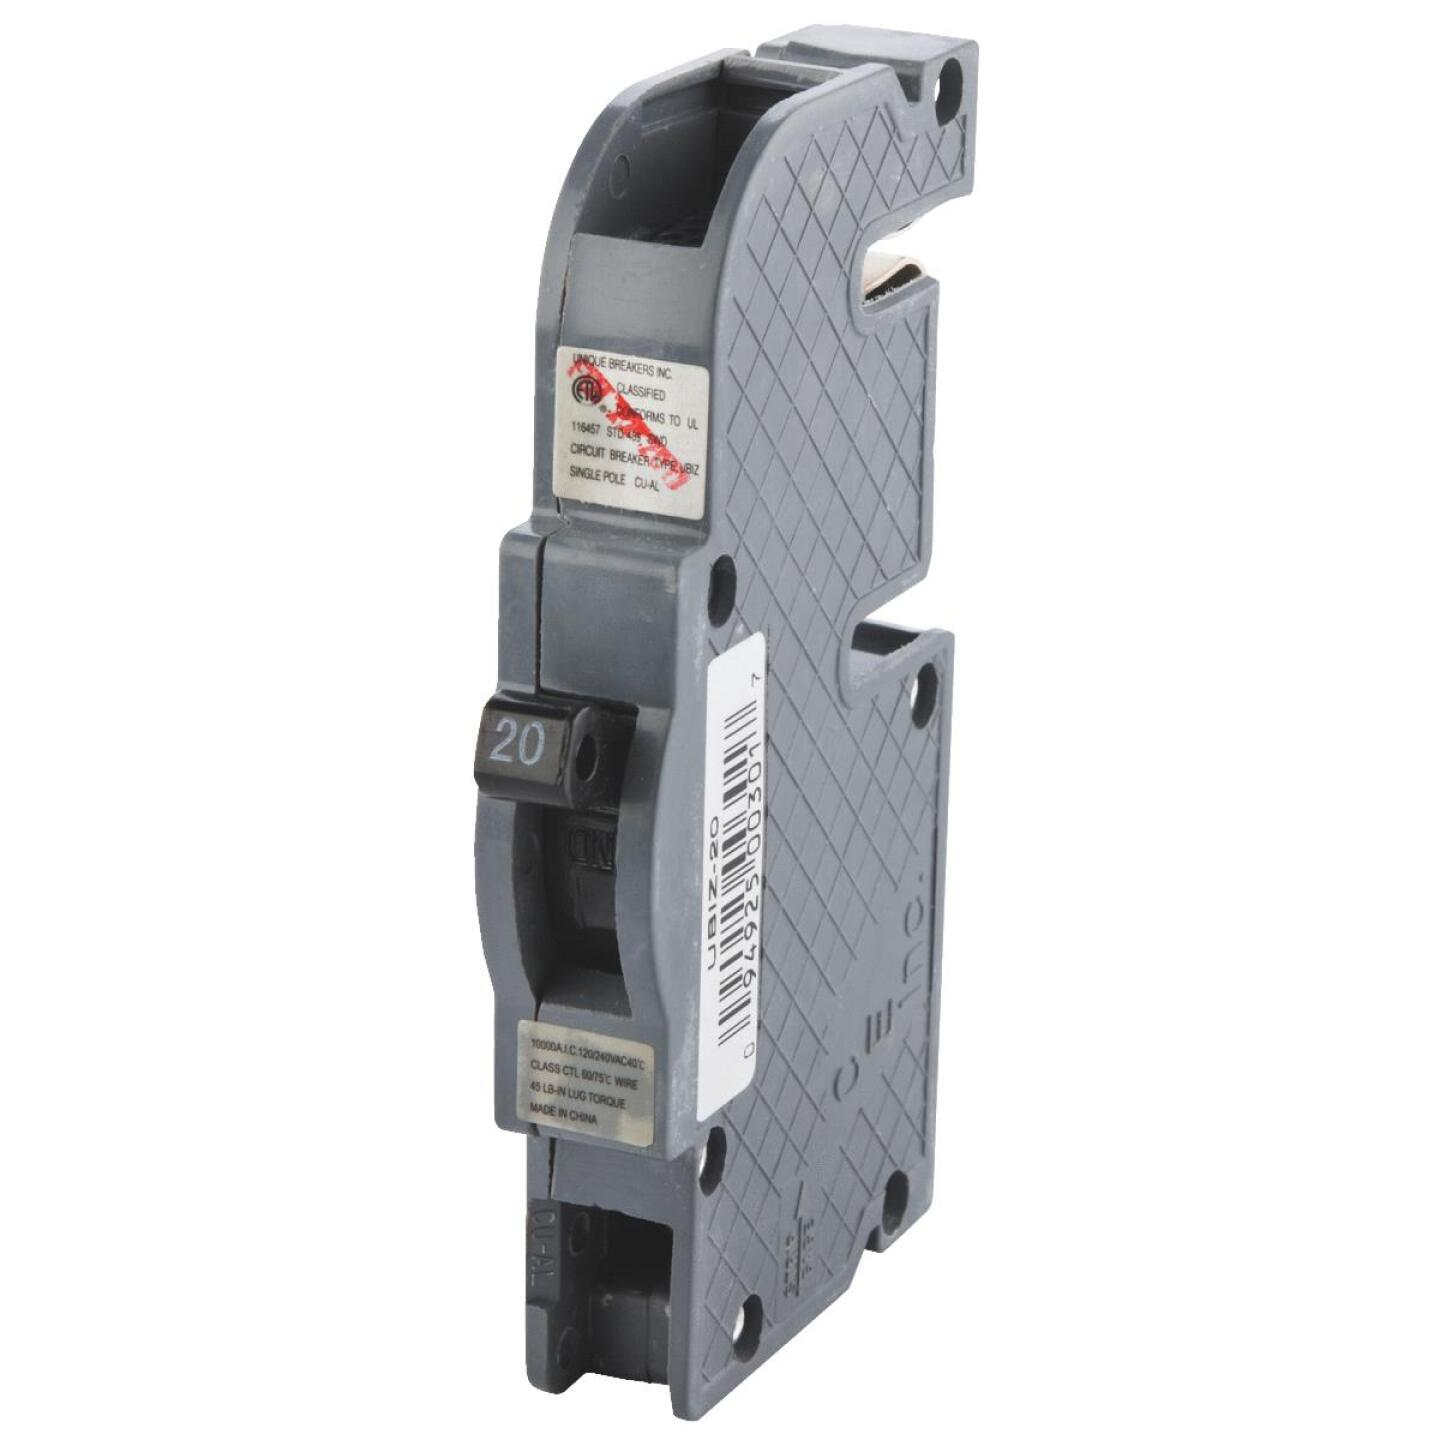 Connecticut Electric 20A Single-Pole Standard Trip Packaged Replacement Circuit Breaker For Zinsco Image 3